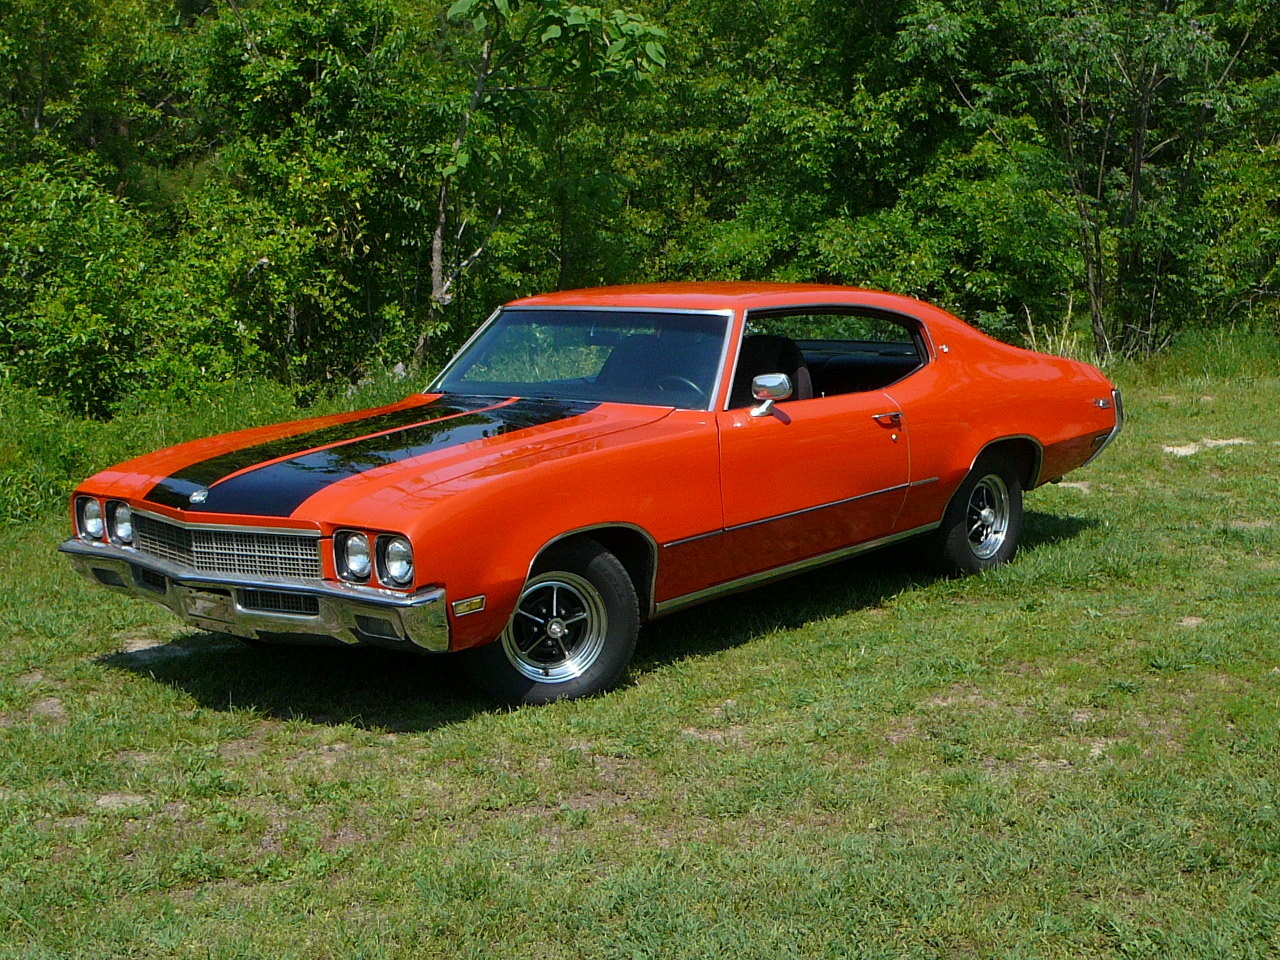 Orange/Black 1972 Buick Skylark Custom